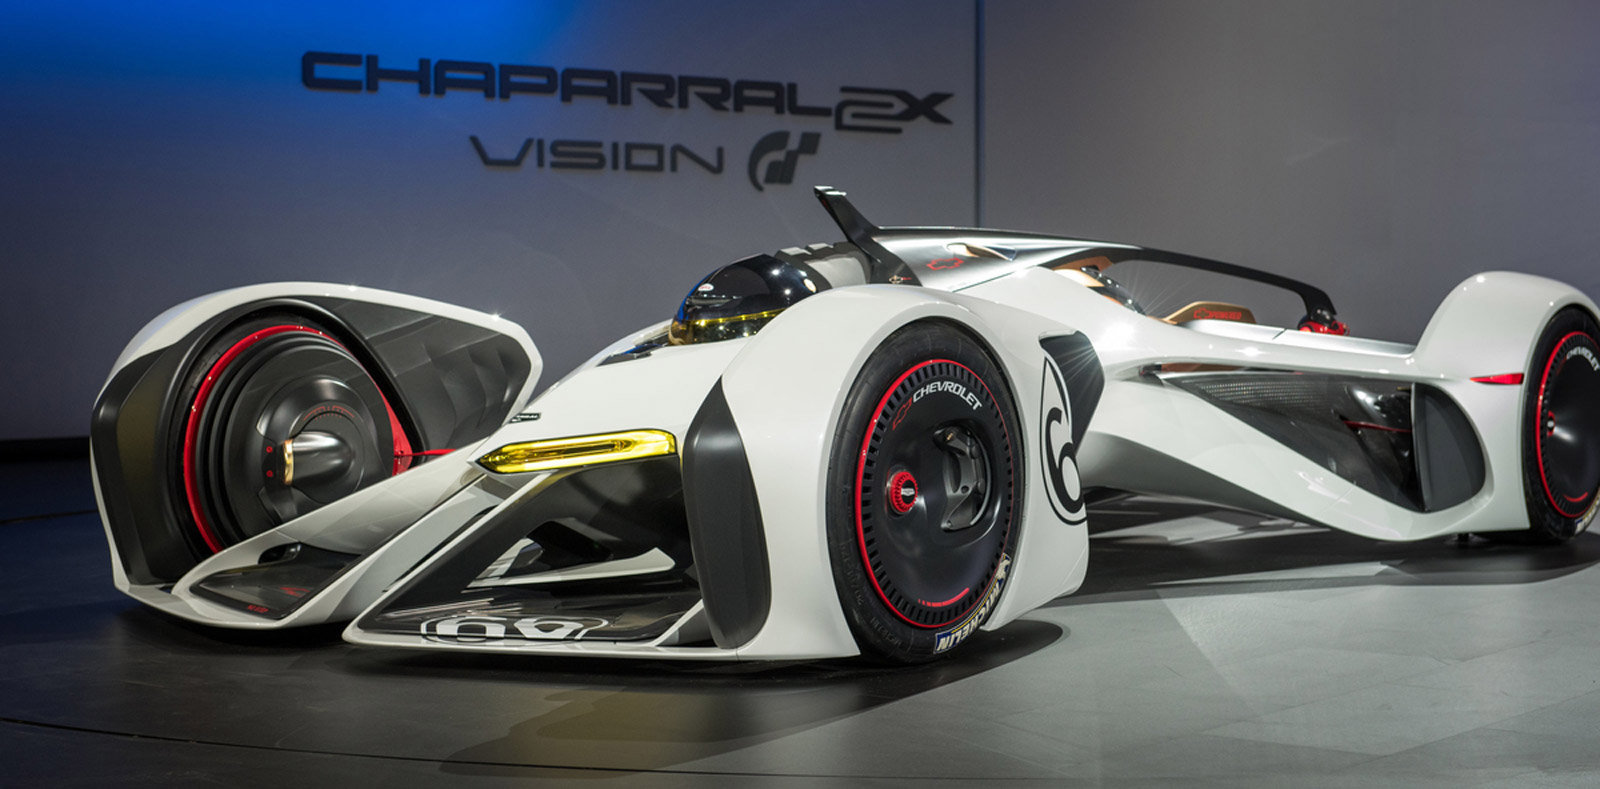 Chevy Chaparral 2X Vision Gran Turismo Concept Makes Its L ...